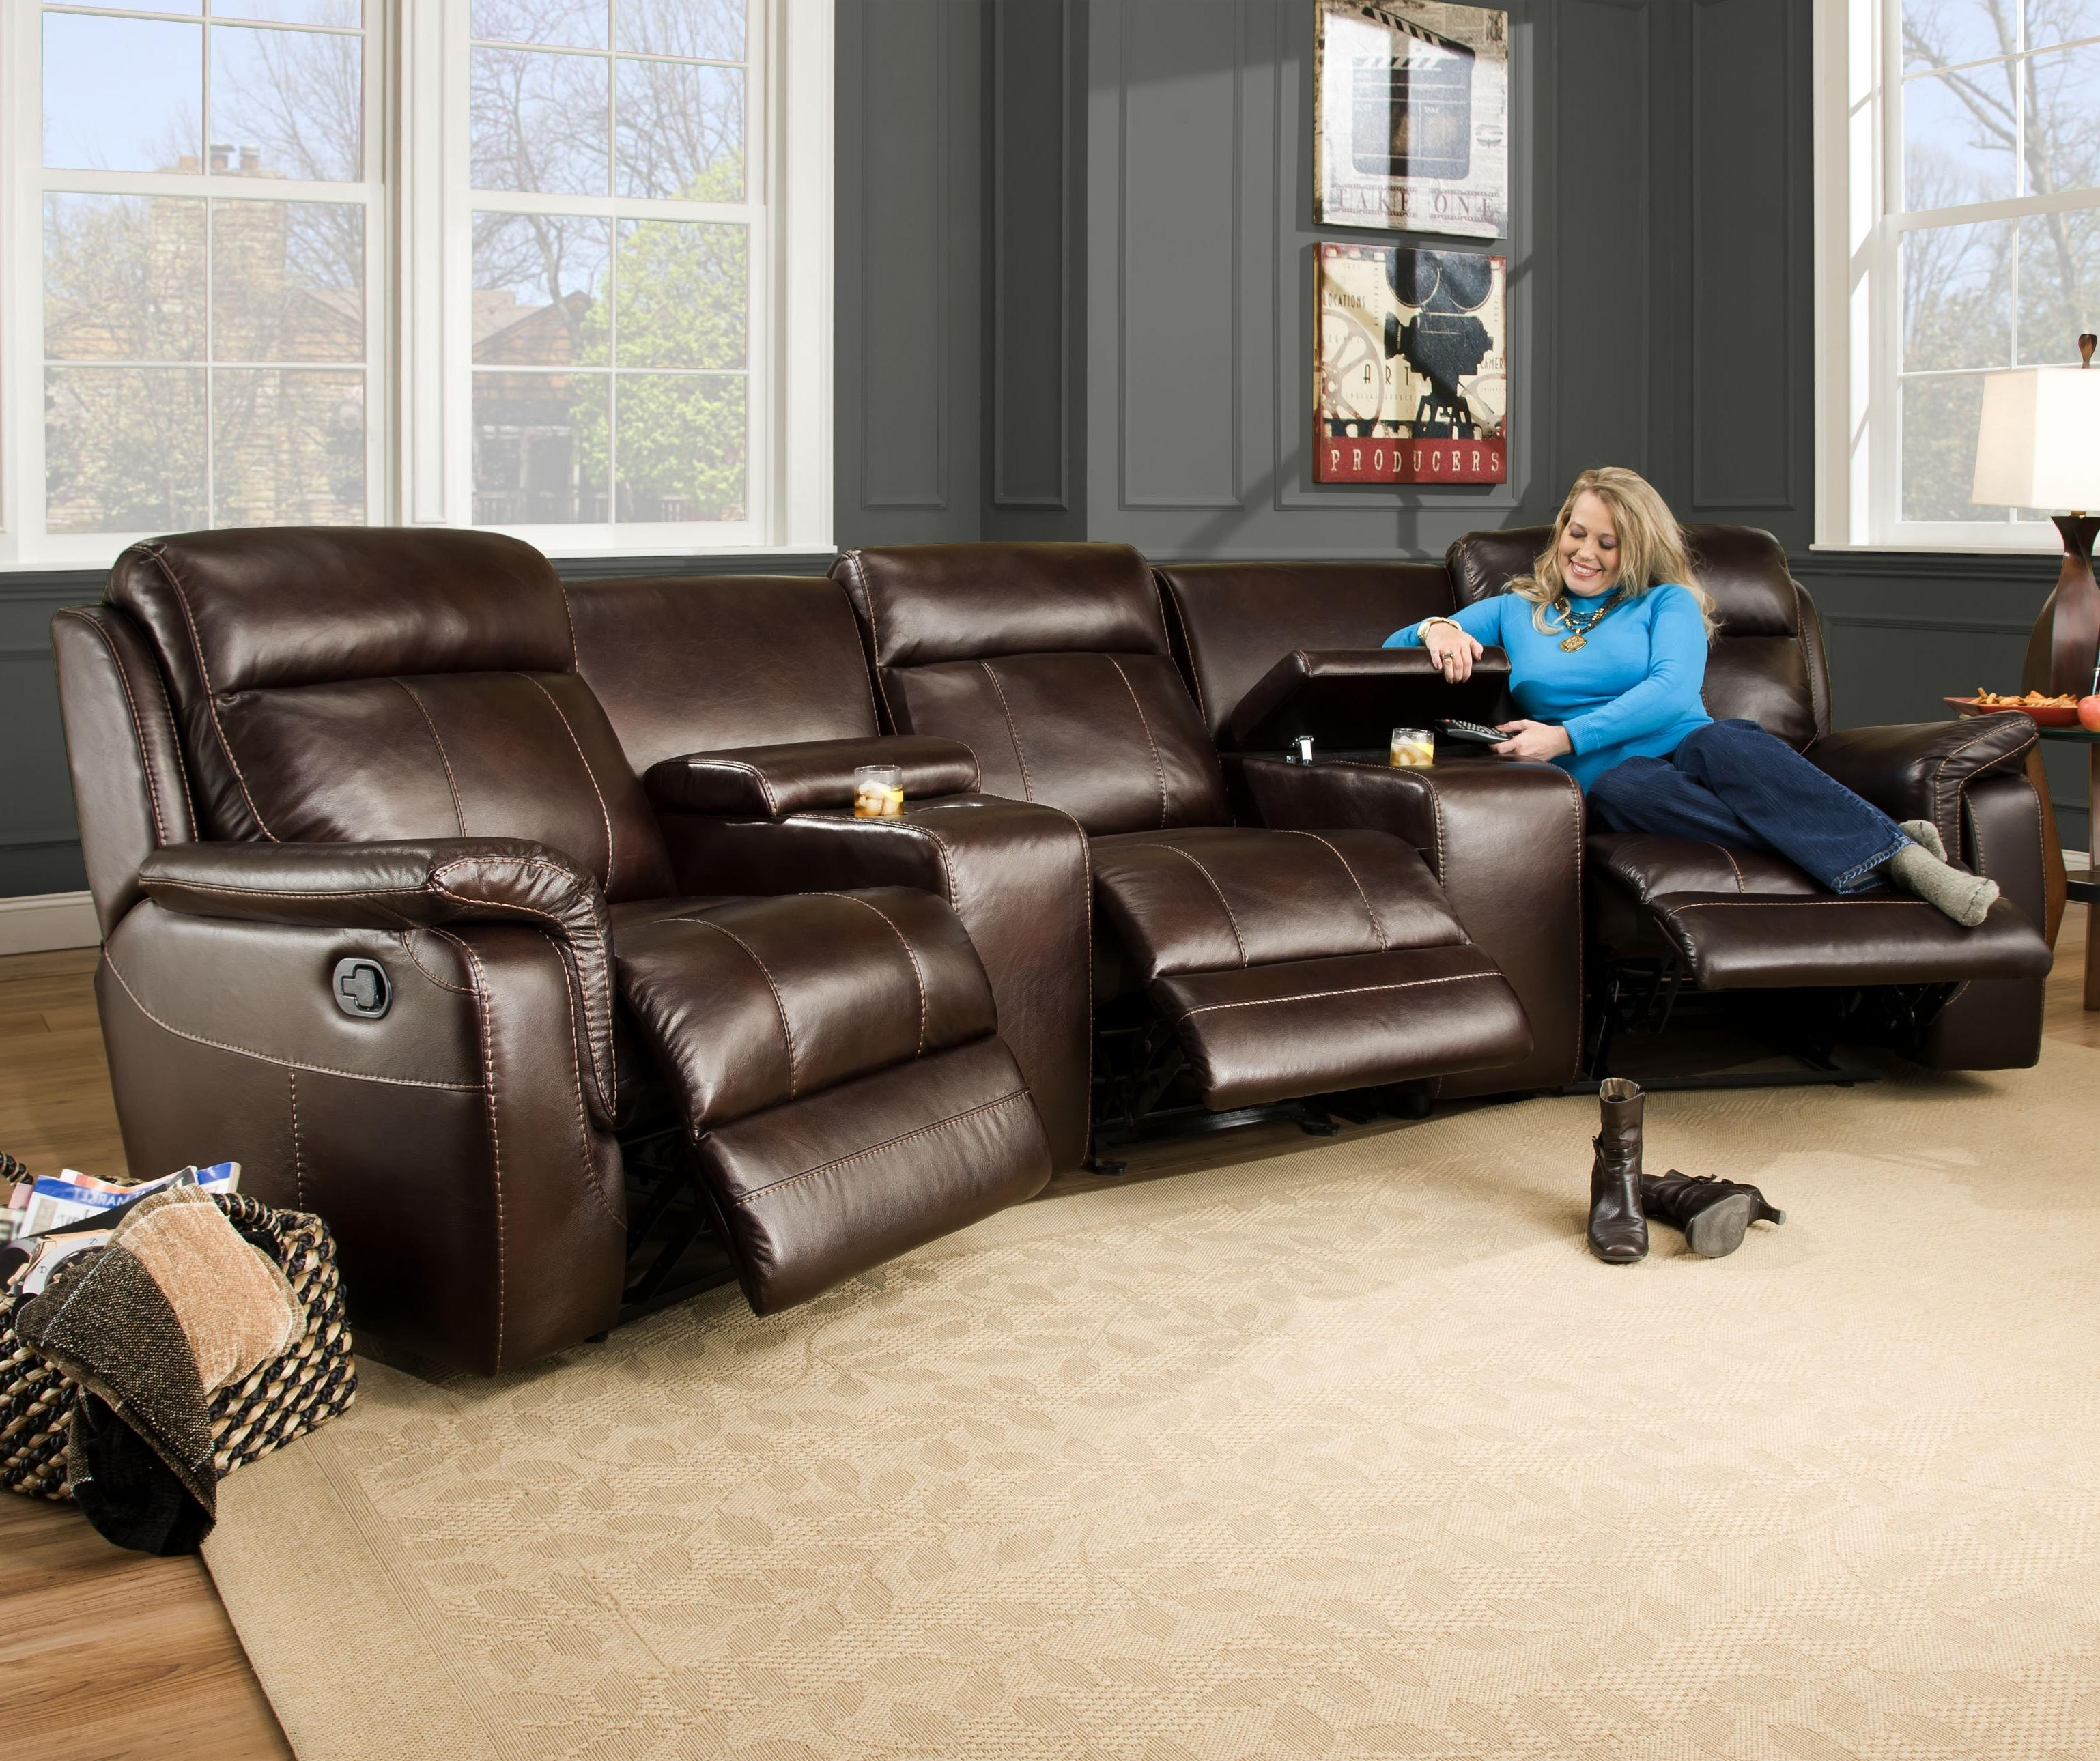 Fancy Curved Reclining Sofa 58 Sofas And Couches Set With Curved in Curved Recliner Sofas (Image 7 of 10)